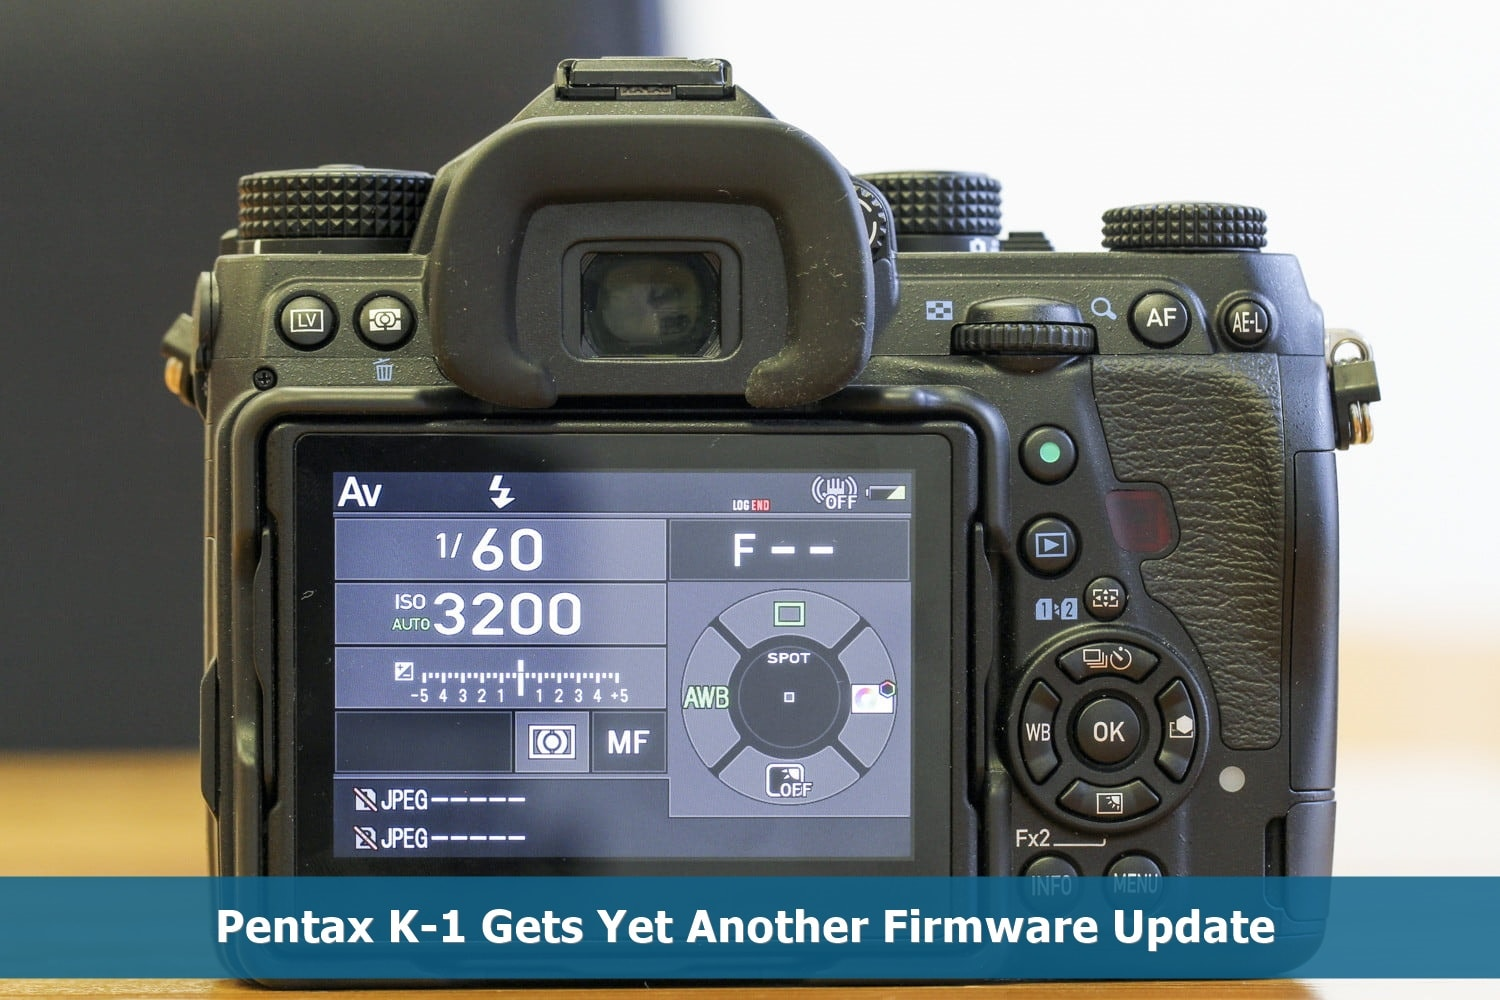 Pentax K-1 Gets Yet Another Firmware Update